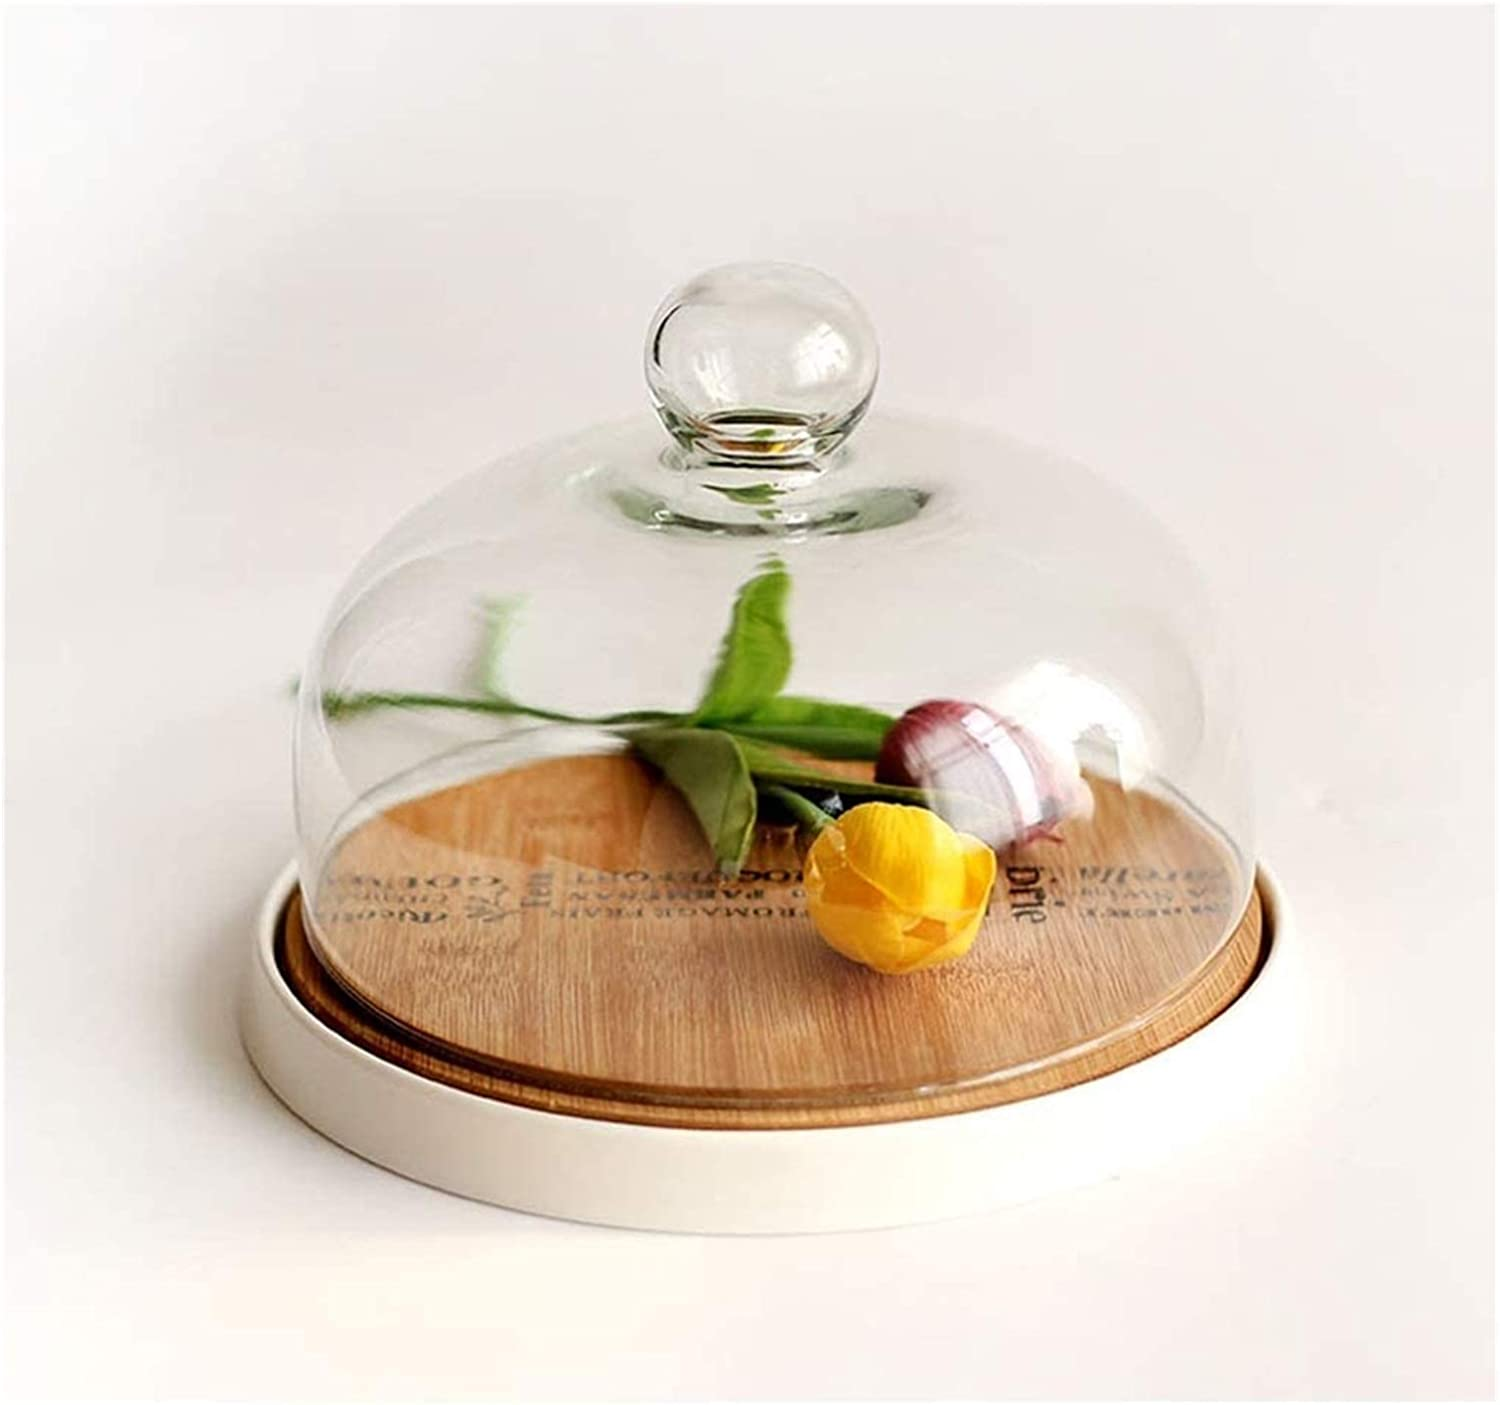 Cake Stand with Dome Plate for Quality inspection White Tray C National uniform free shipping Bamboo Display